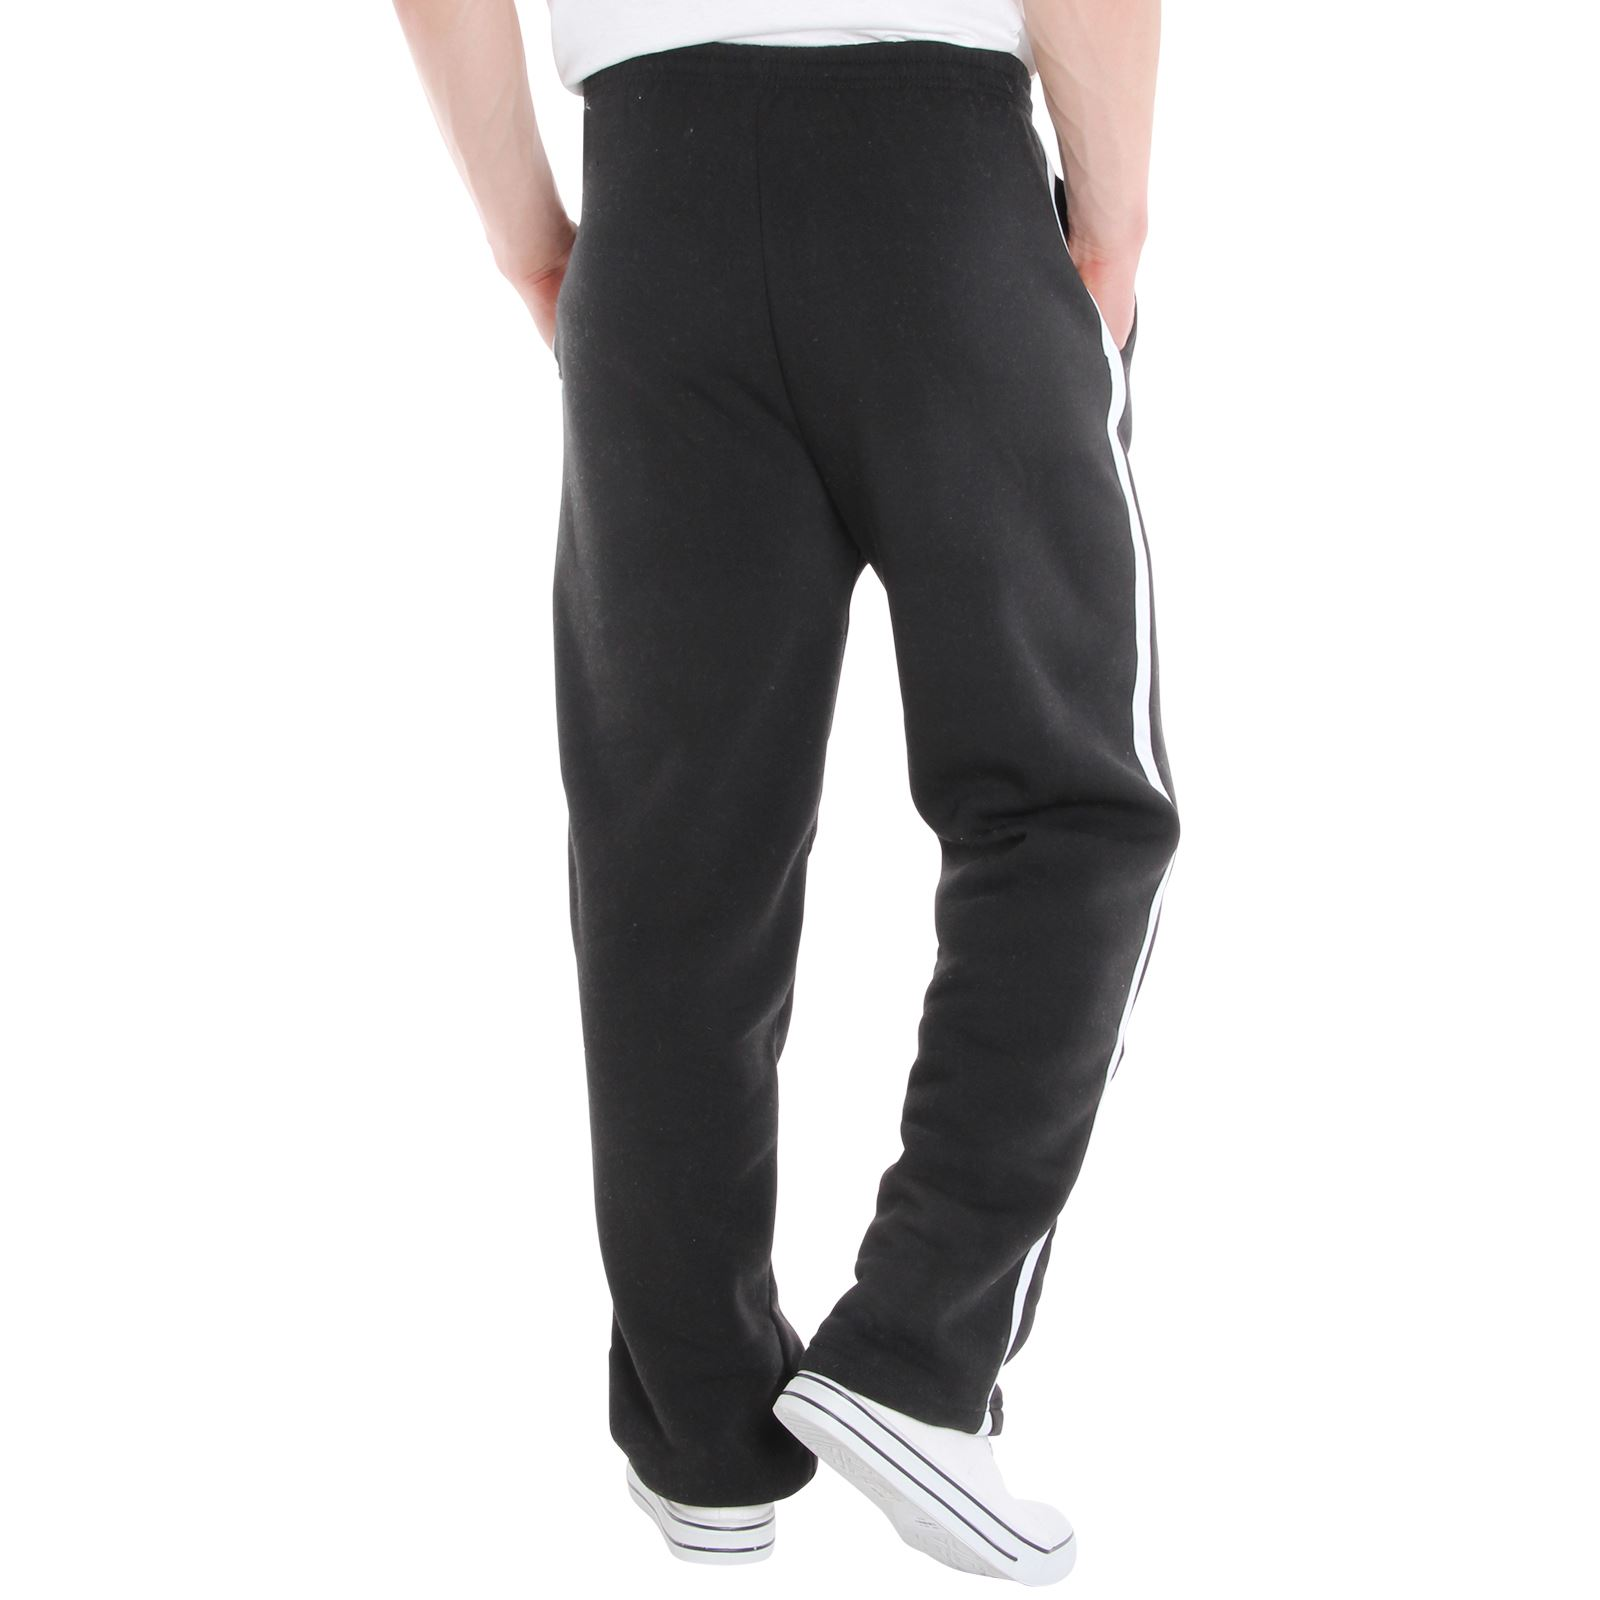 Mens-Tracksuit-Bottoms-Striped-Joggers-Jogging-Trousers-Fleece-Pants-Casual-Work thumbnail 8